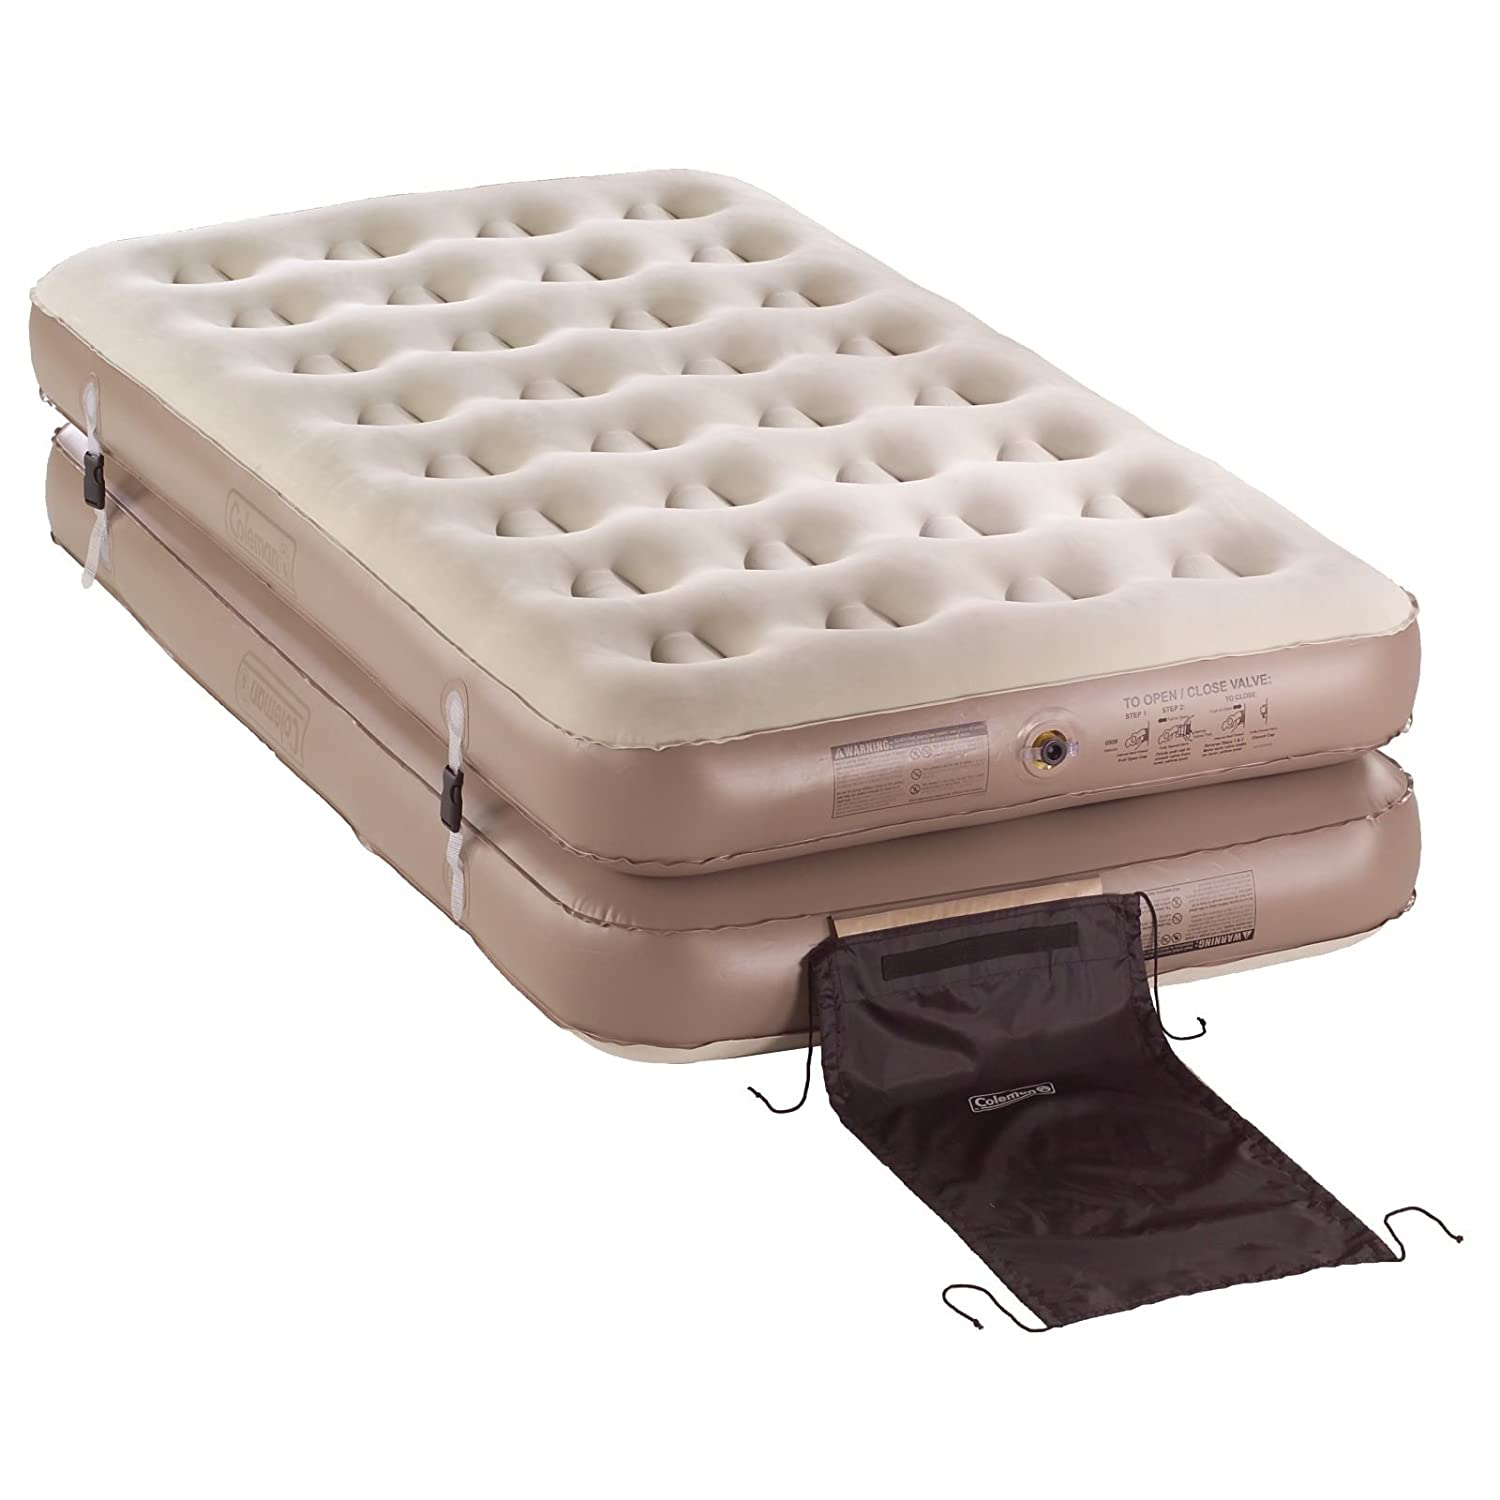 queen size air mattress coleman. Amazon.com: Coleman 2000010283 QuickBed 4-N-1 Airbed, Twin/King: Sports \u0026 Outdoors Queen Size Air Mattress R